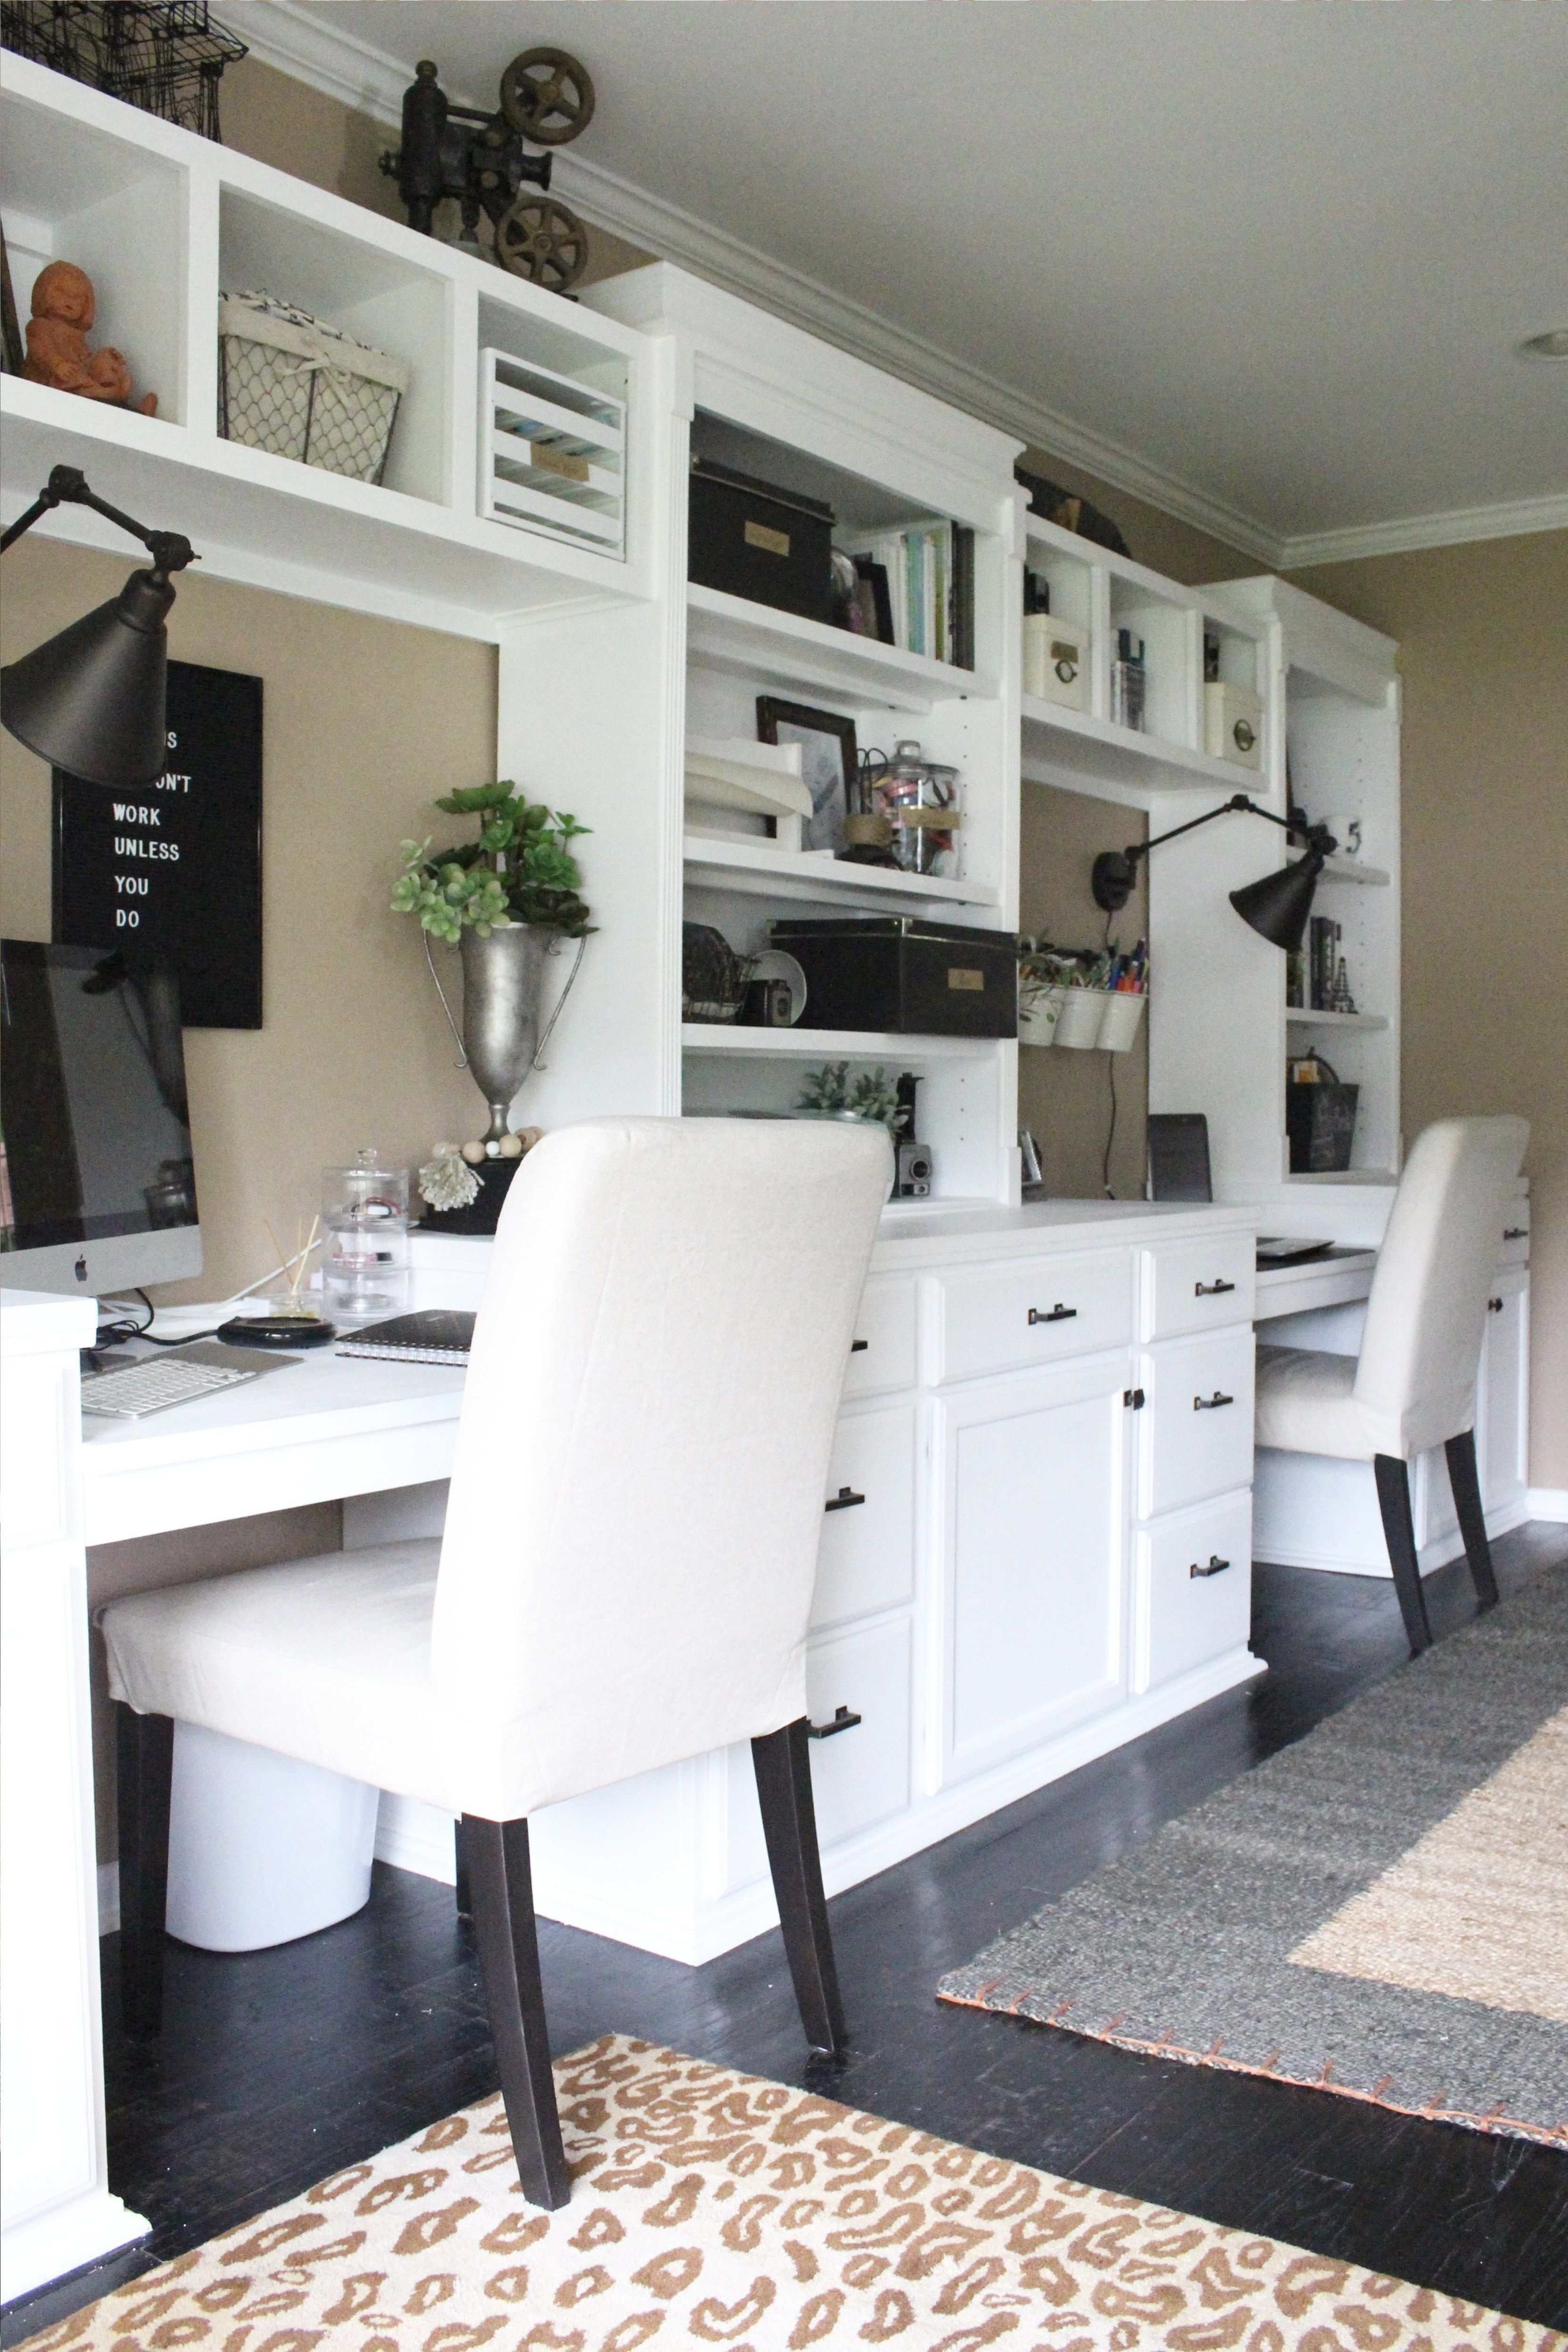 Home office and study style creative ideas for example  tiny area desk choices cool layouts cabinets create work space within also decor rh pinterest